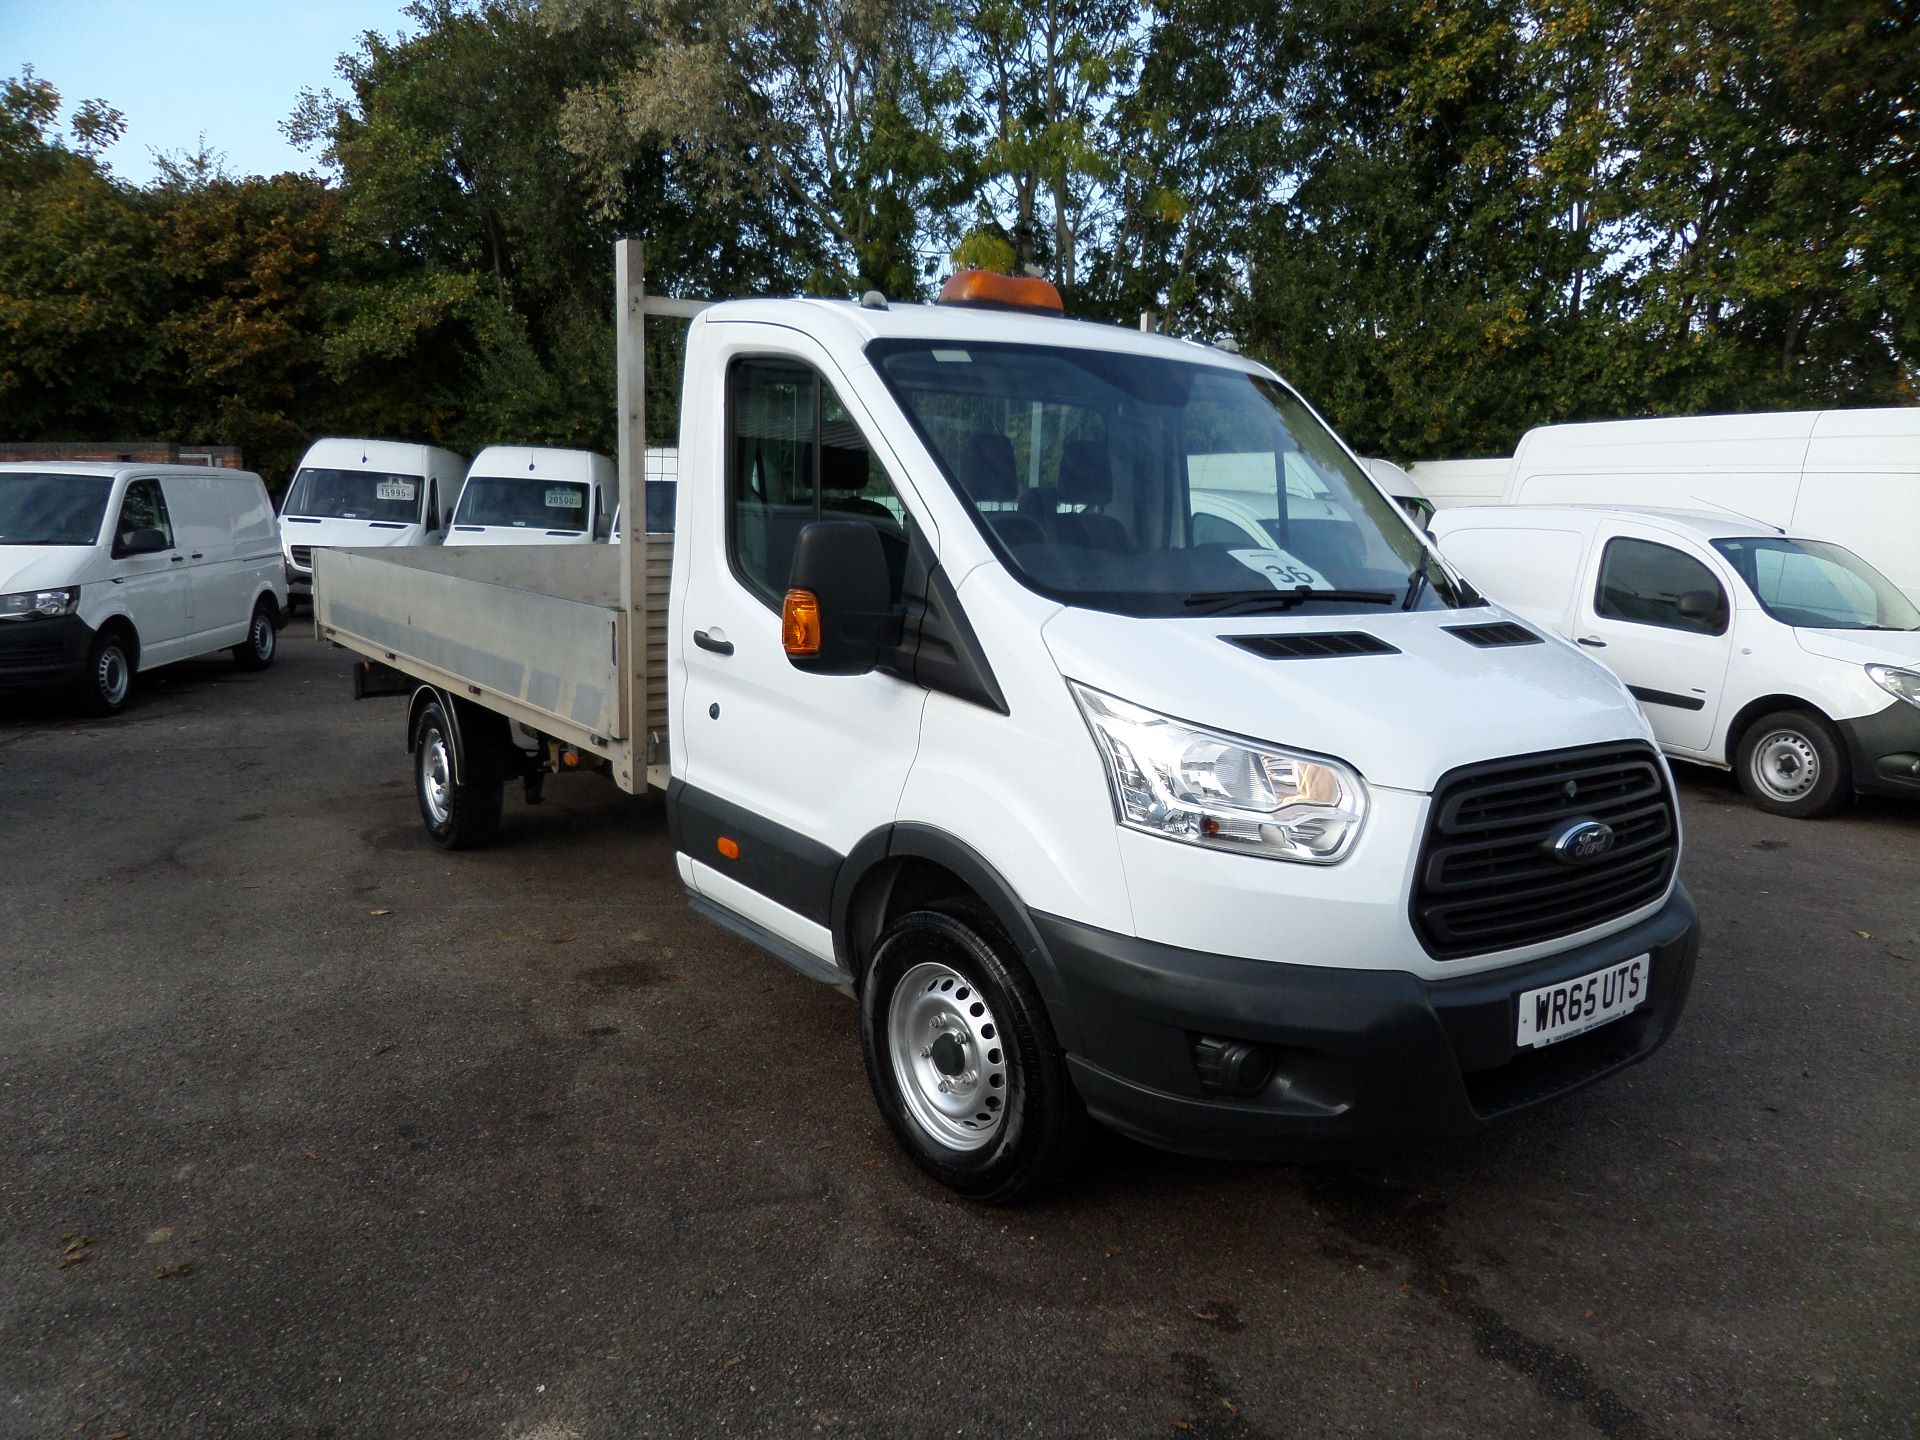 2015 Ford Transit 2.2 Tdci 125Ps Dropside EURO 5 (WR65UTS)